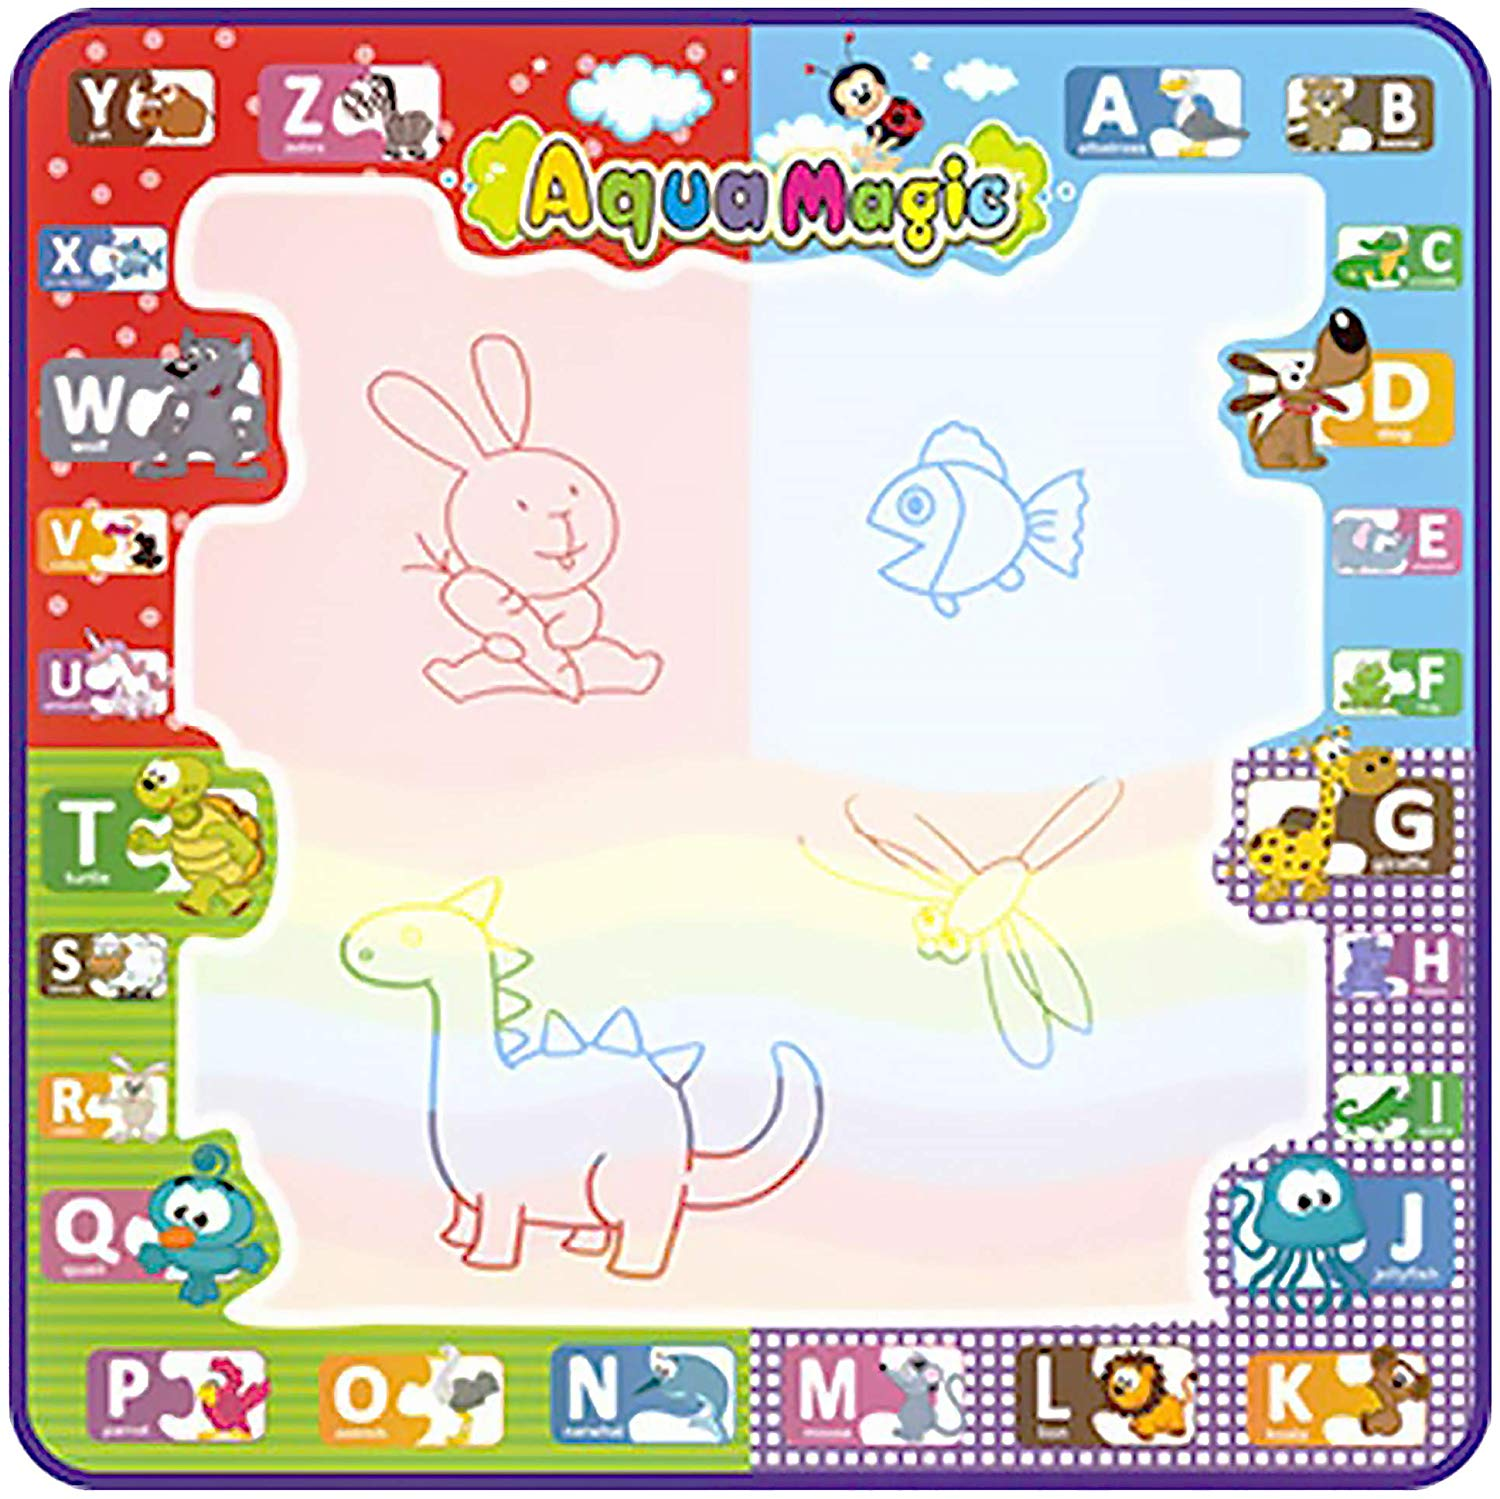 Logics Best Activity Mat for Learning- Premium Water Drawing Mat for Kids Age 2-5 Years Old, Toddler Educational Gift